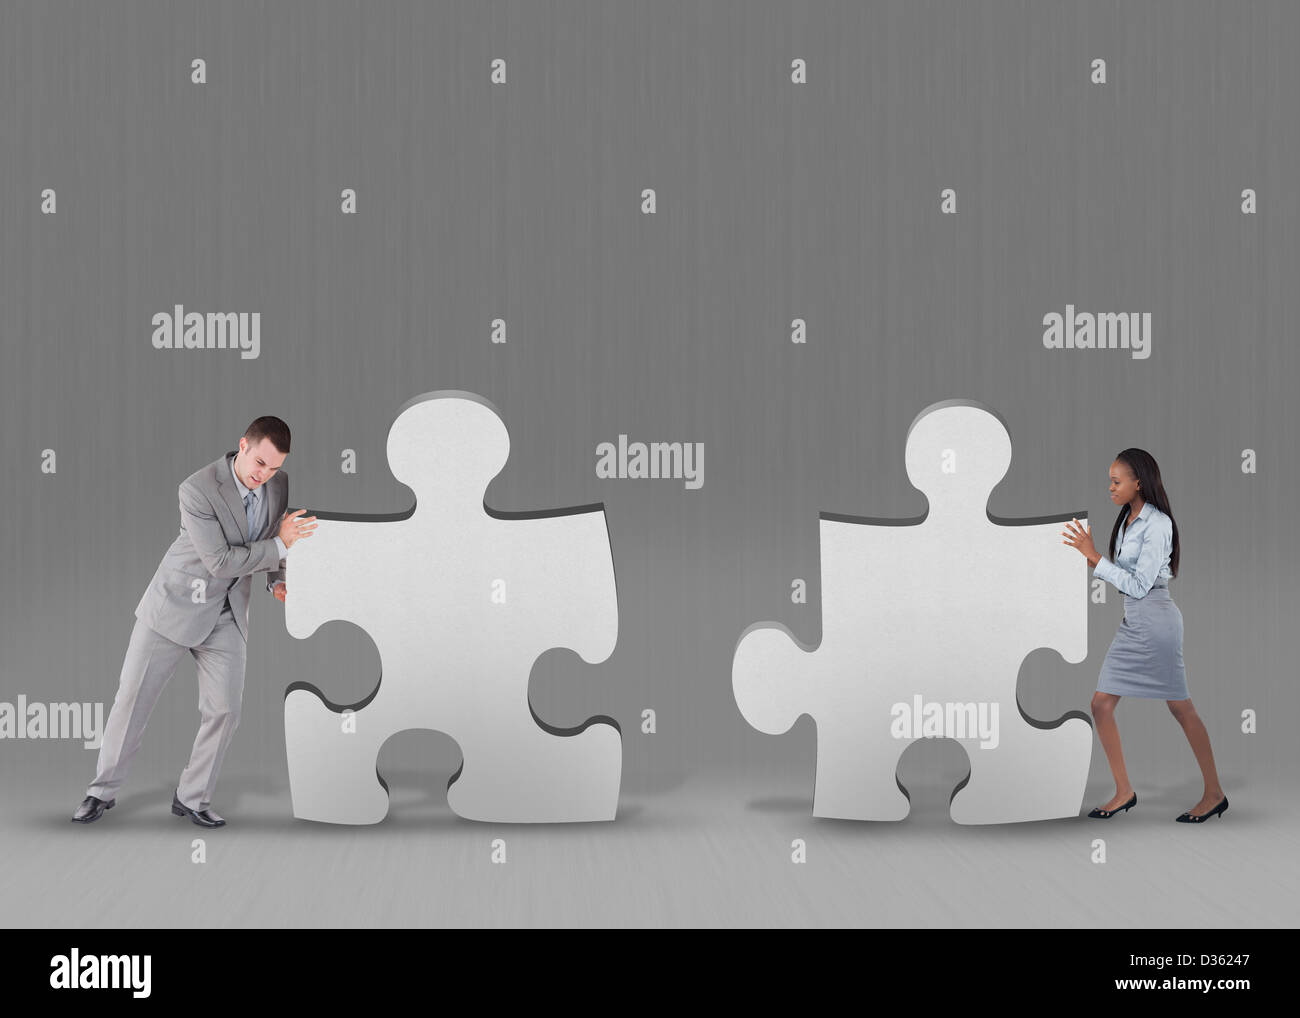 Business people problem solving - Stock Image